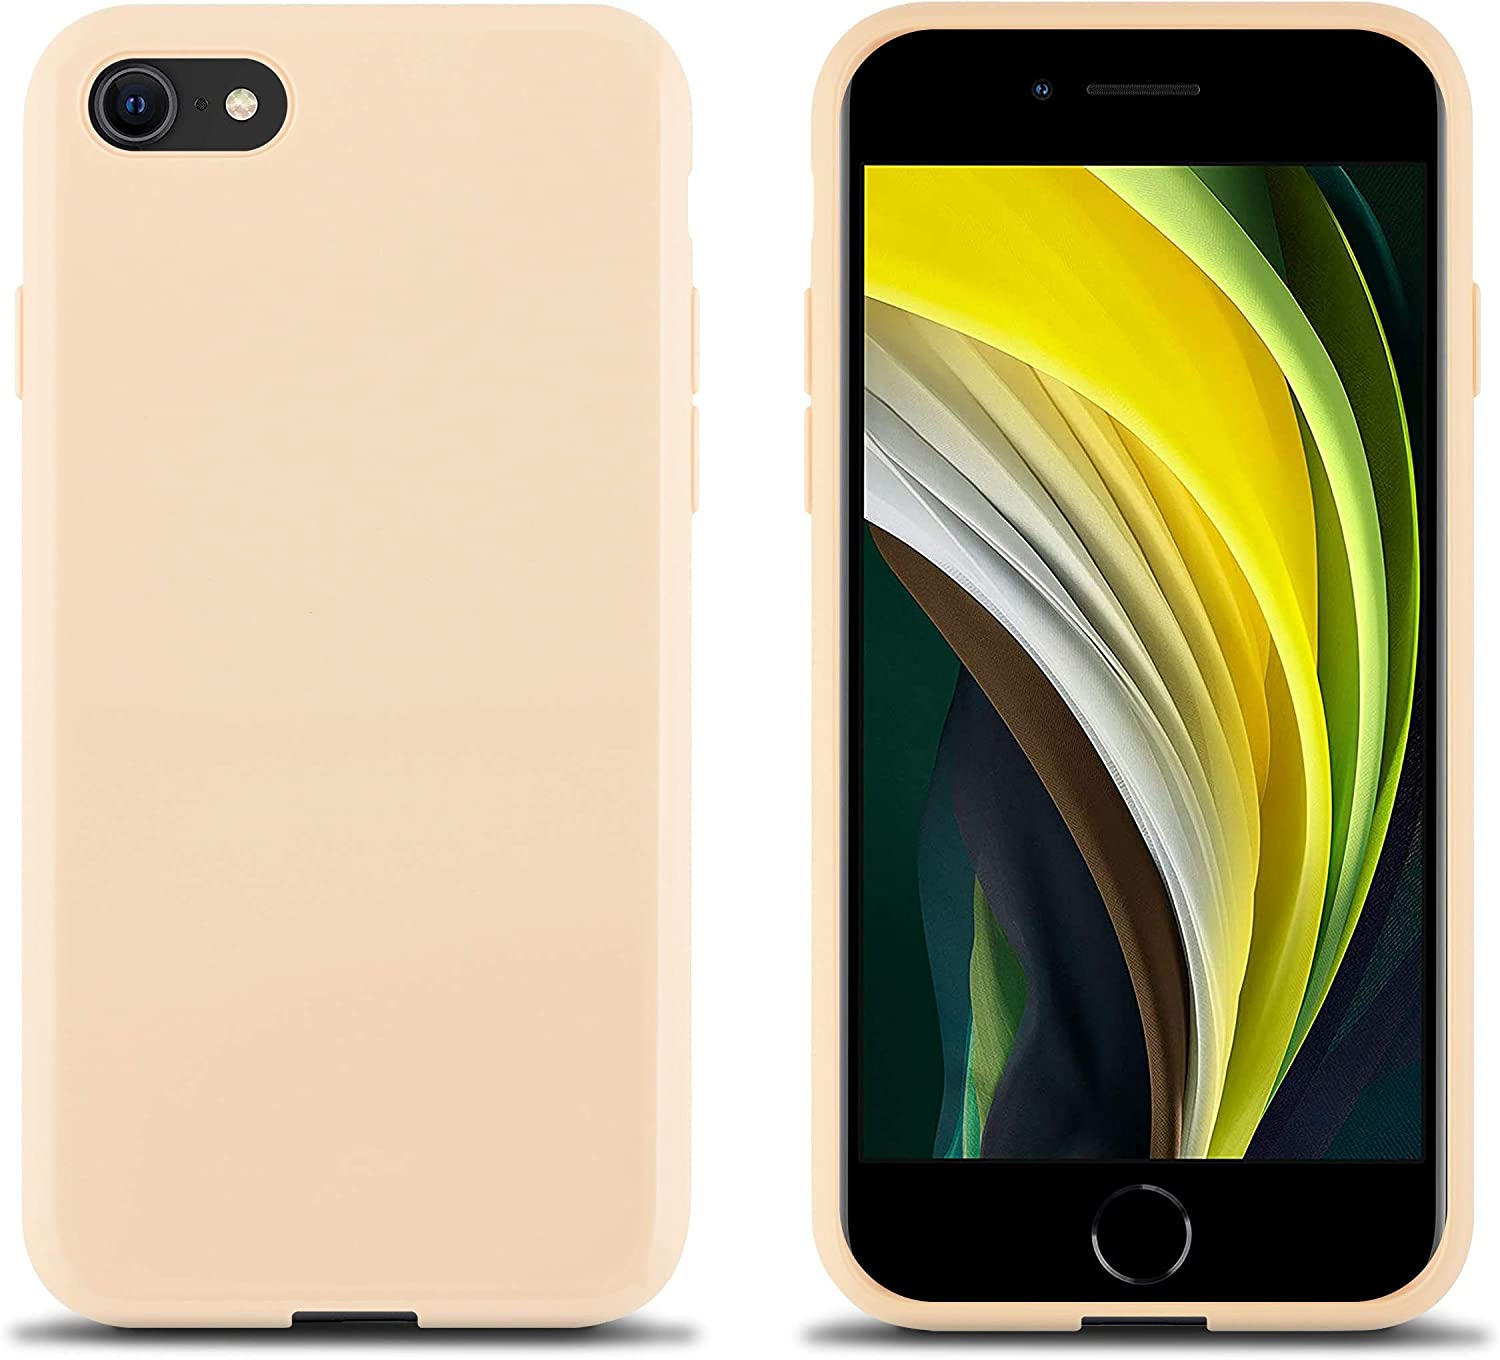 OLOR Apple iPhone 7/8/SE2020 Case – Ultra Slim Fit Cell Phone Shockproof Protective Wireless Charging Compatible Eco-Friendly Clean Protection Cover Ivory